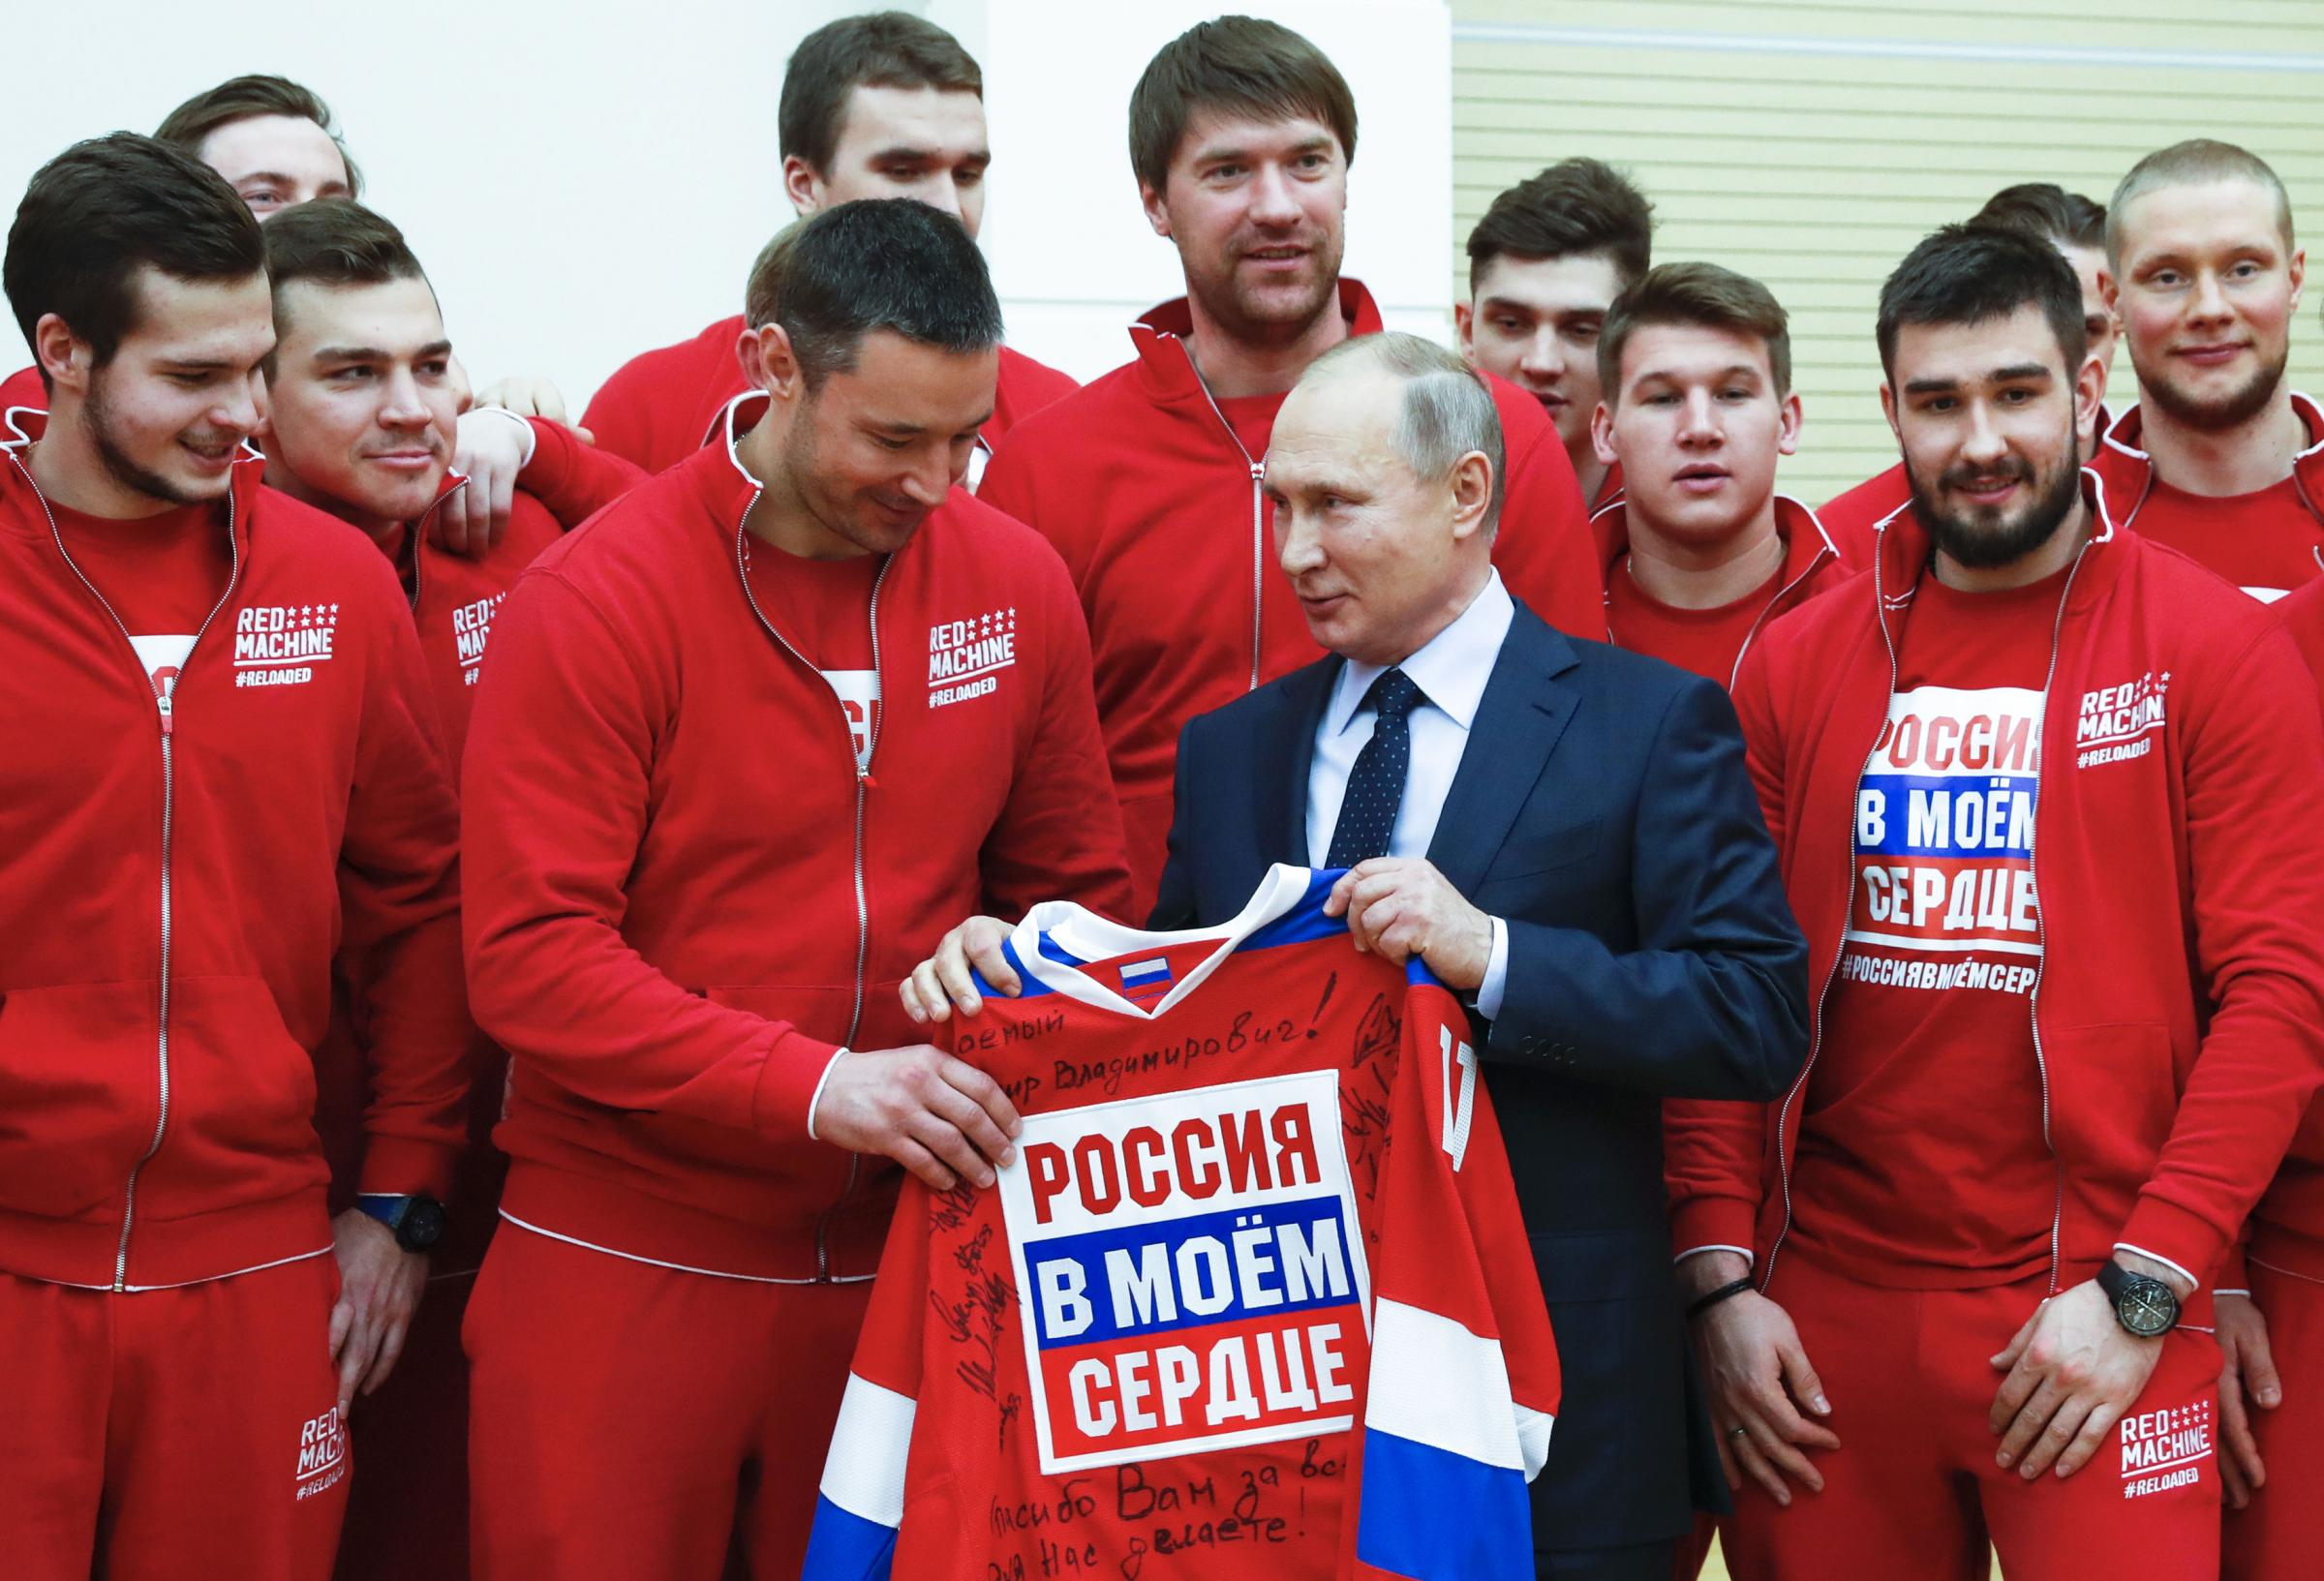 Russian President Vladimir Putin, posing with the Russian national ice hockey team during a meeting with the Russian athletes who will take part in the upcoming 2018 Pyeongchang Winter Olympic Games. PICTURE: PA Wire.